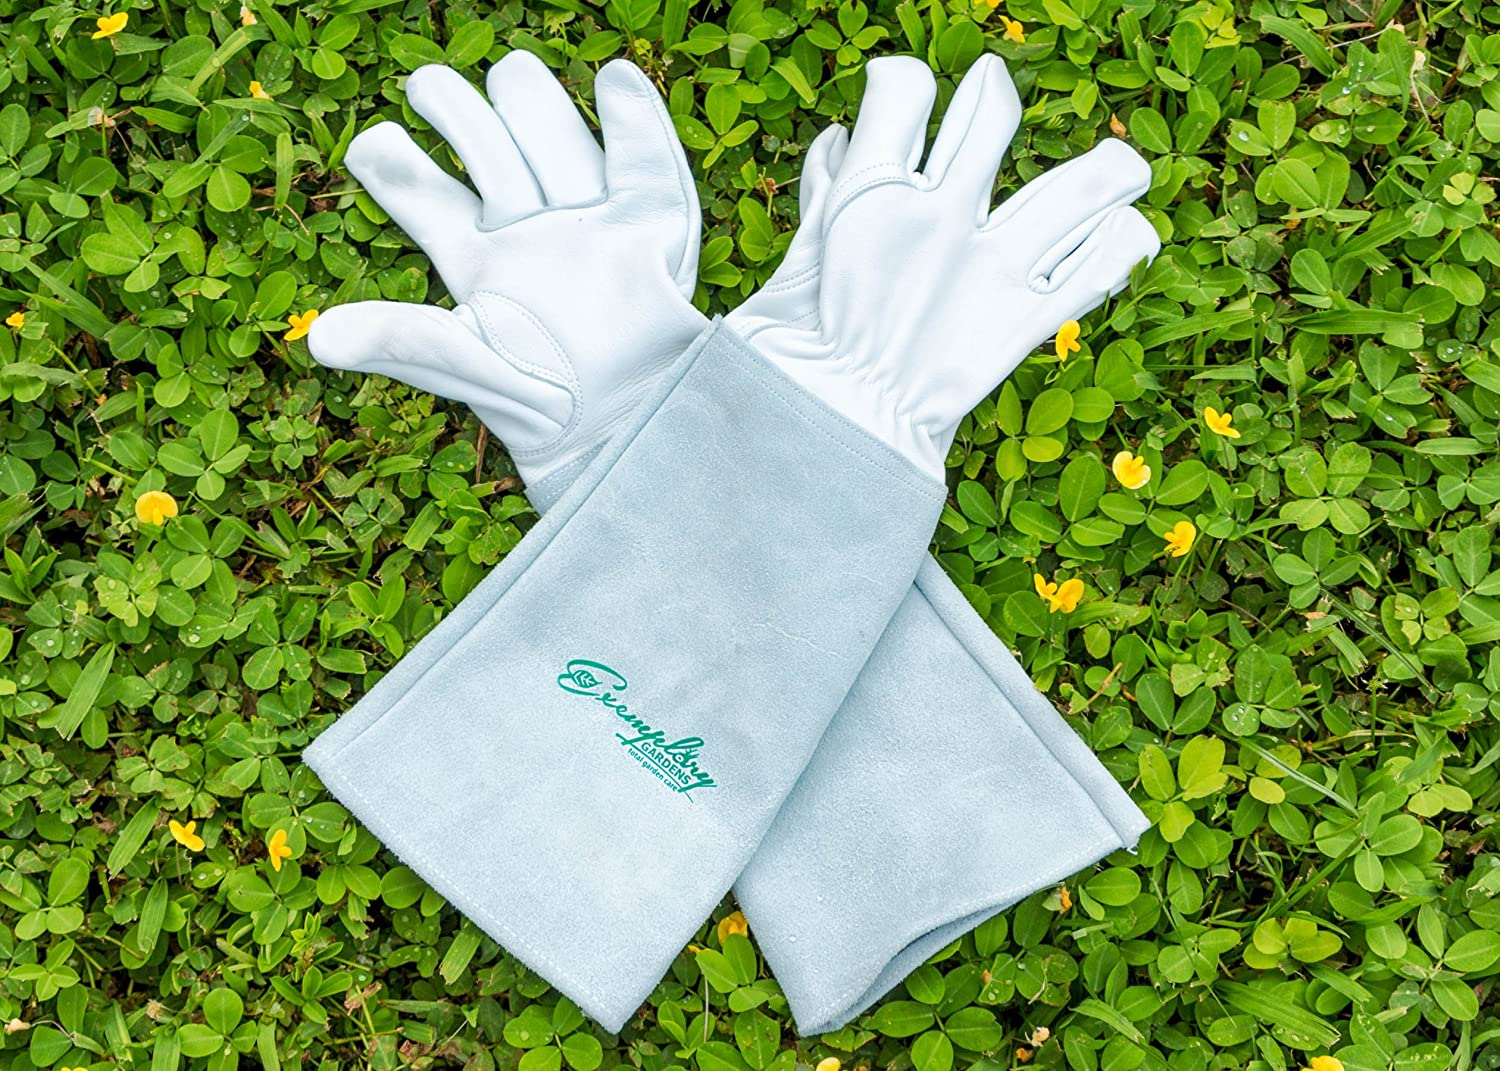 Thorn Proof Goatskin Leather Gardening Gloves with Long Cowhide Gauntlet to Protect Your Arms Until the Elbow Large, Brown Rose Pruning Gloves for Men and Women